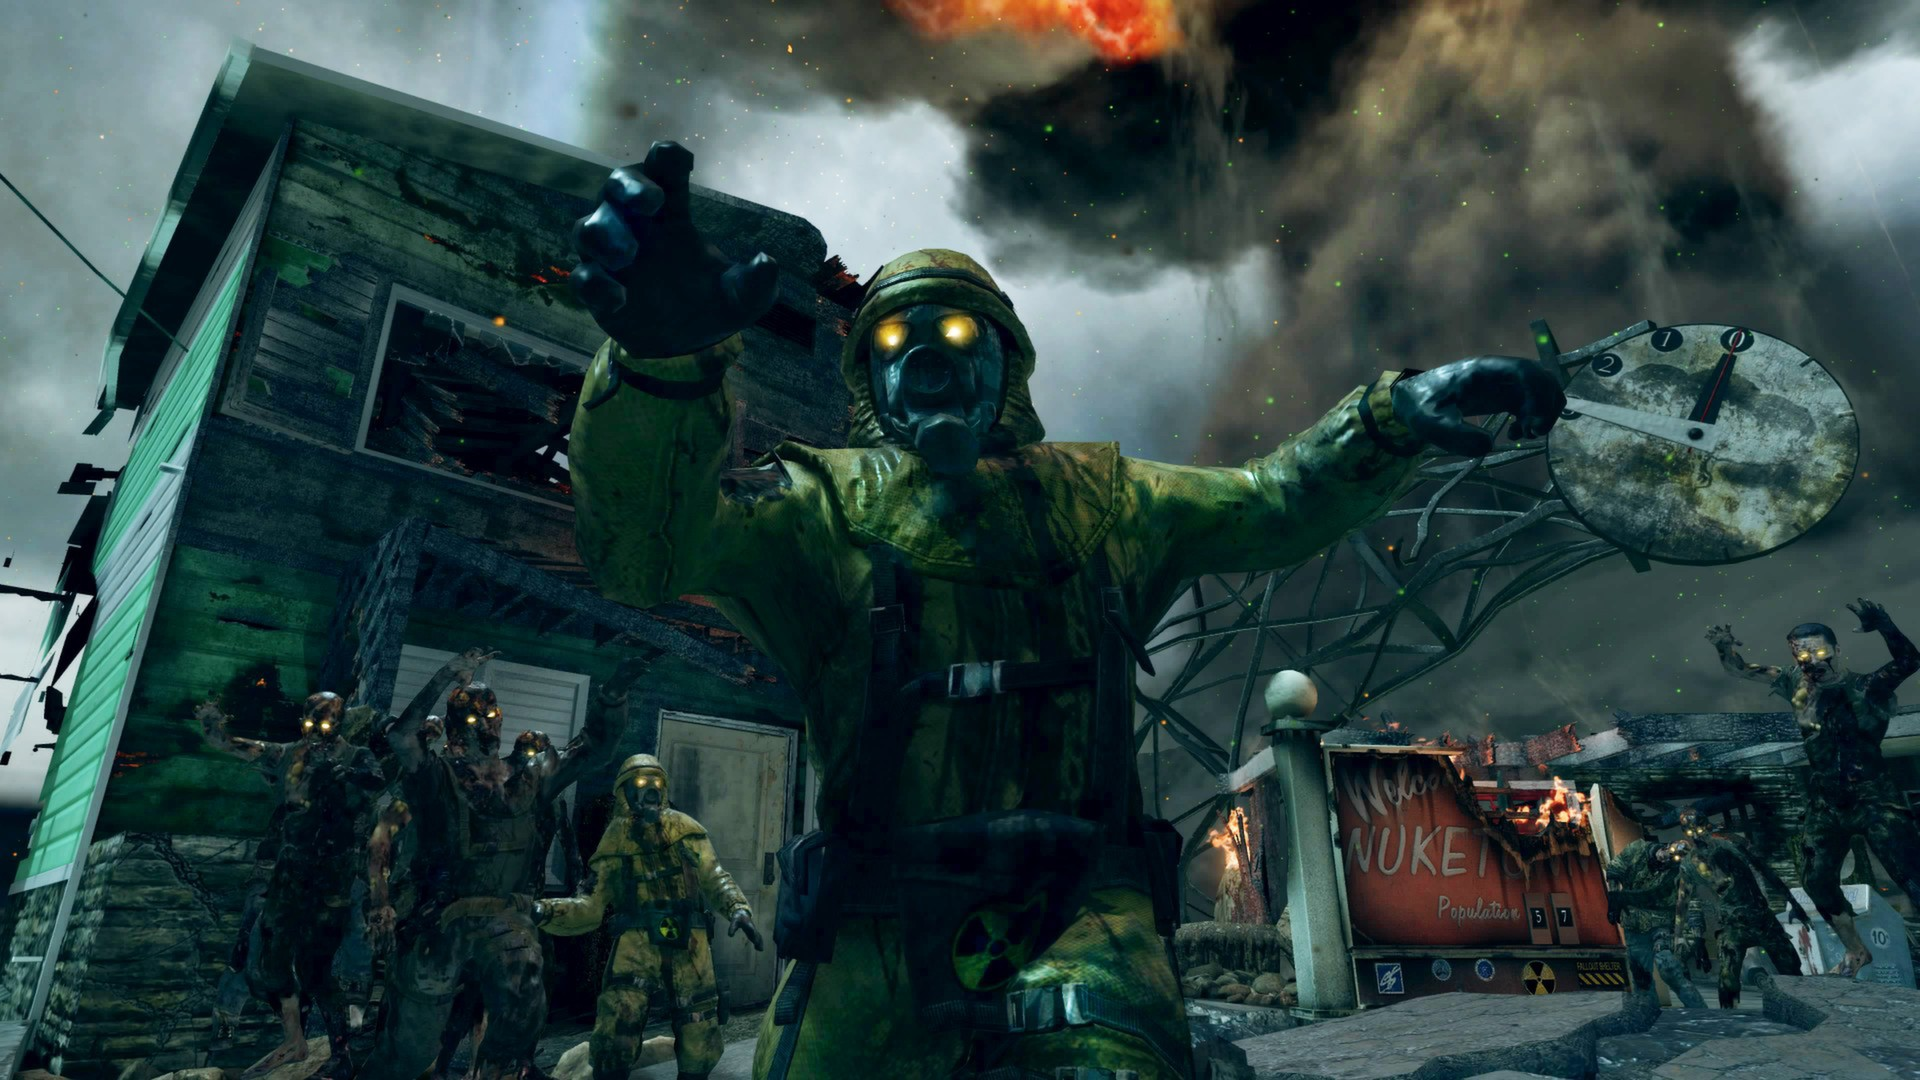 Call of Duty®: Black Ops II - Nuketown Zombies Map on Steam